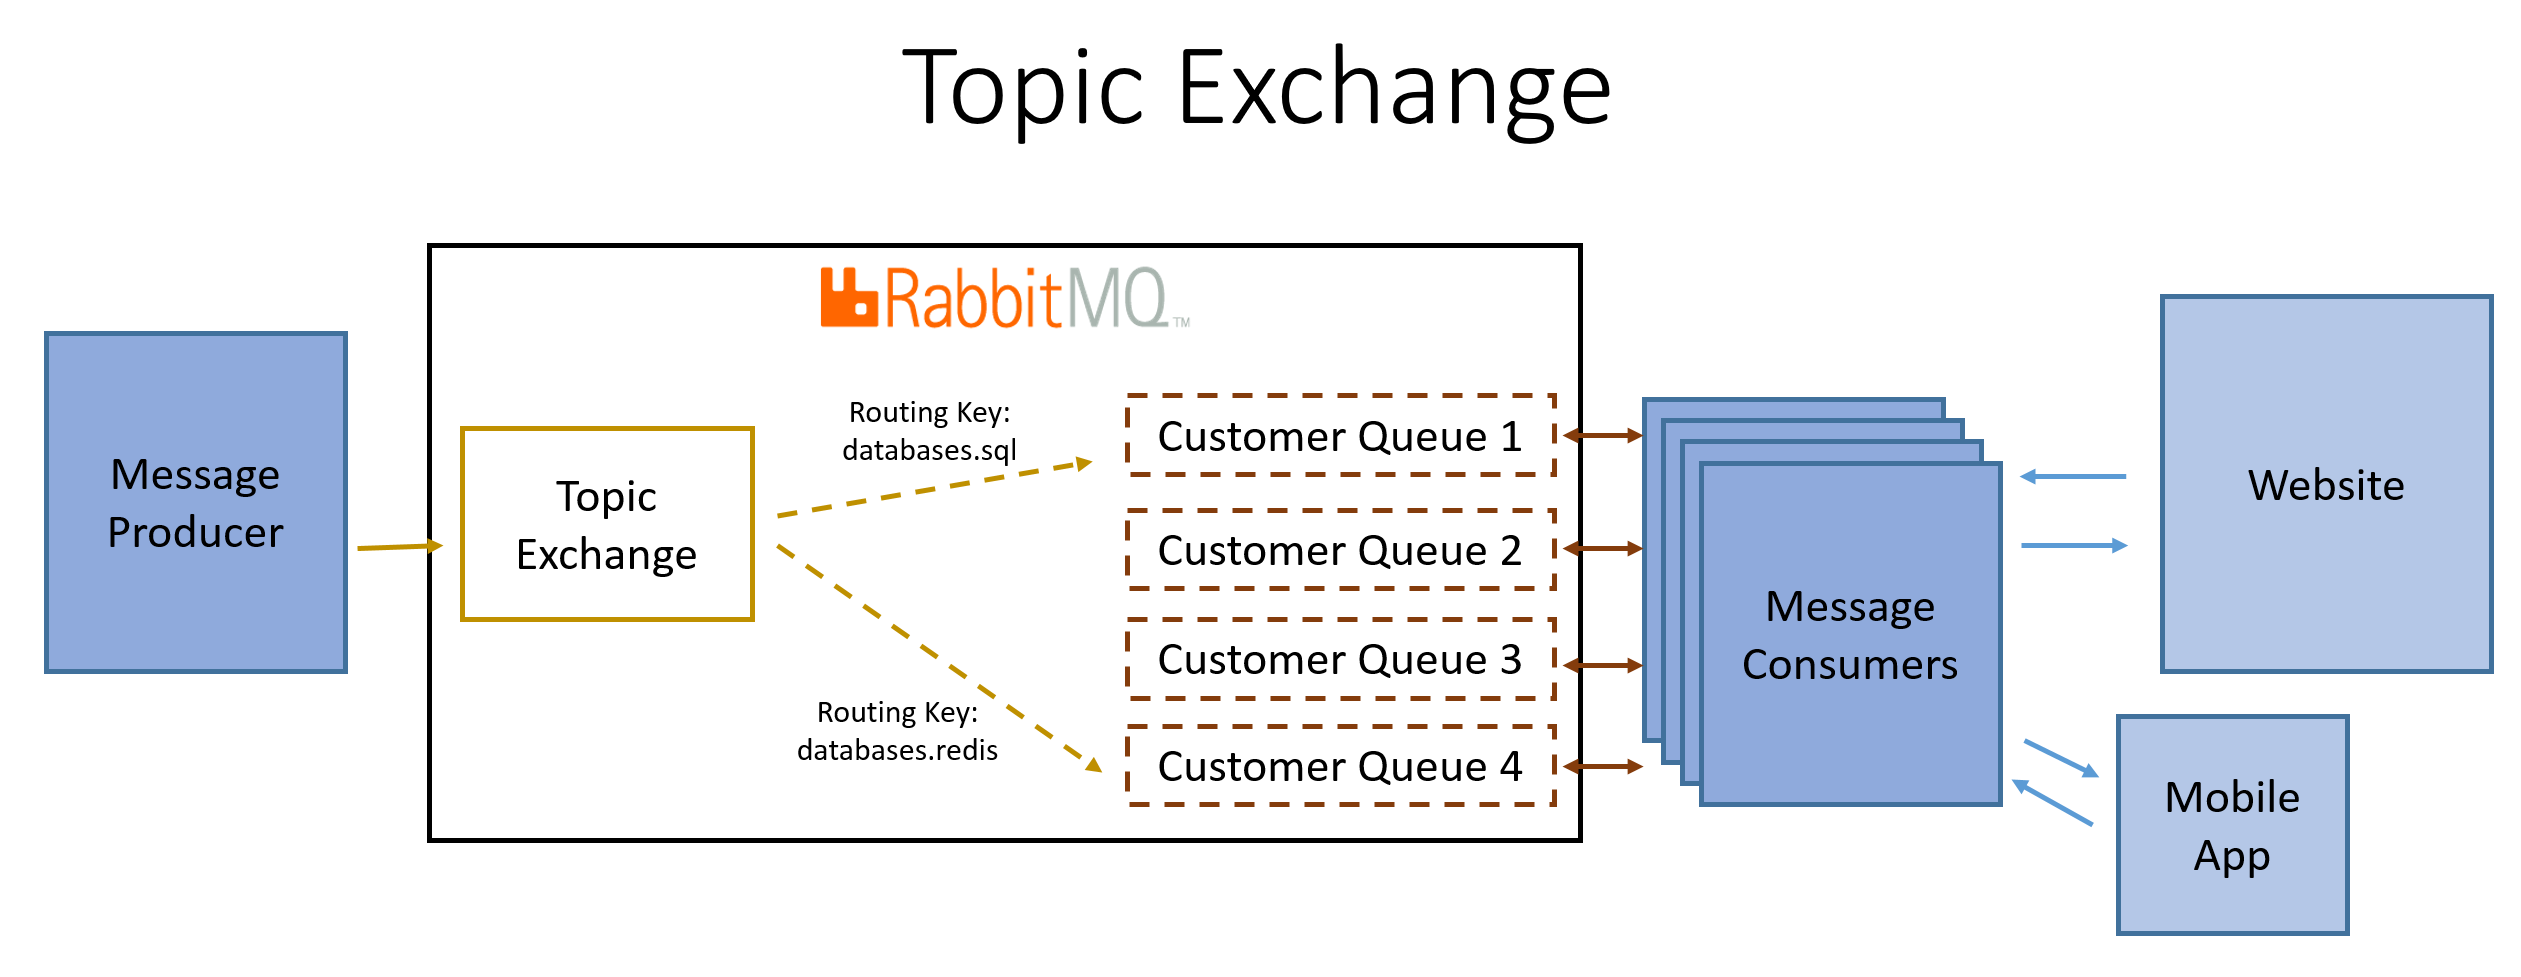 Configuring Rabbitmq Exchanges Queues And Bindings Part 1 Keys Can Access Control Wiring Diagram Now Weve Got Content Corps Set Up But As We See From Our Conceptual Diagrams Need A Place To Route Messages The